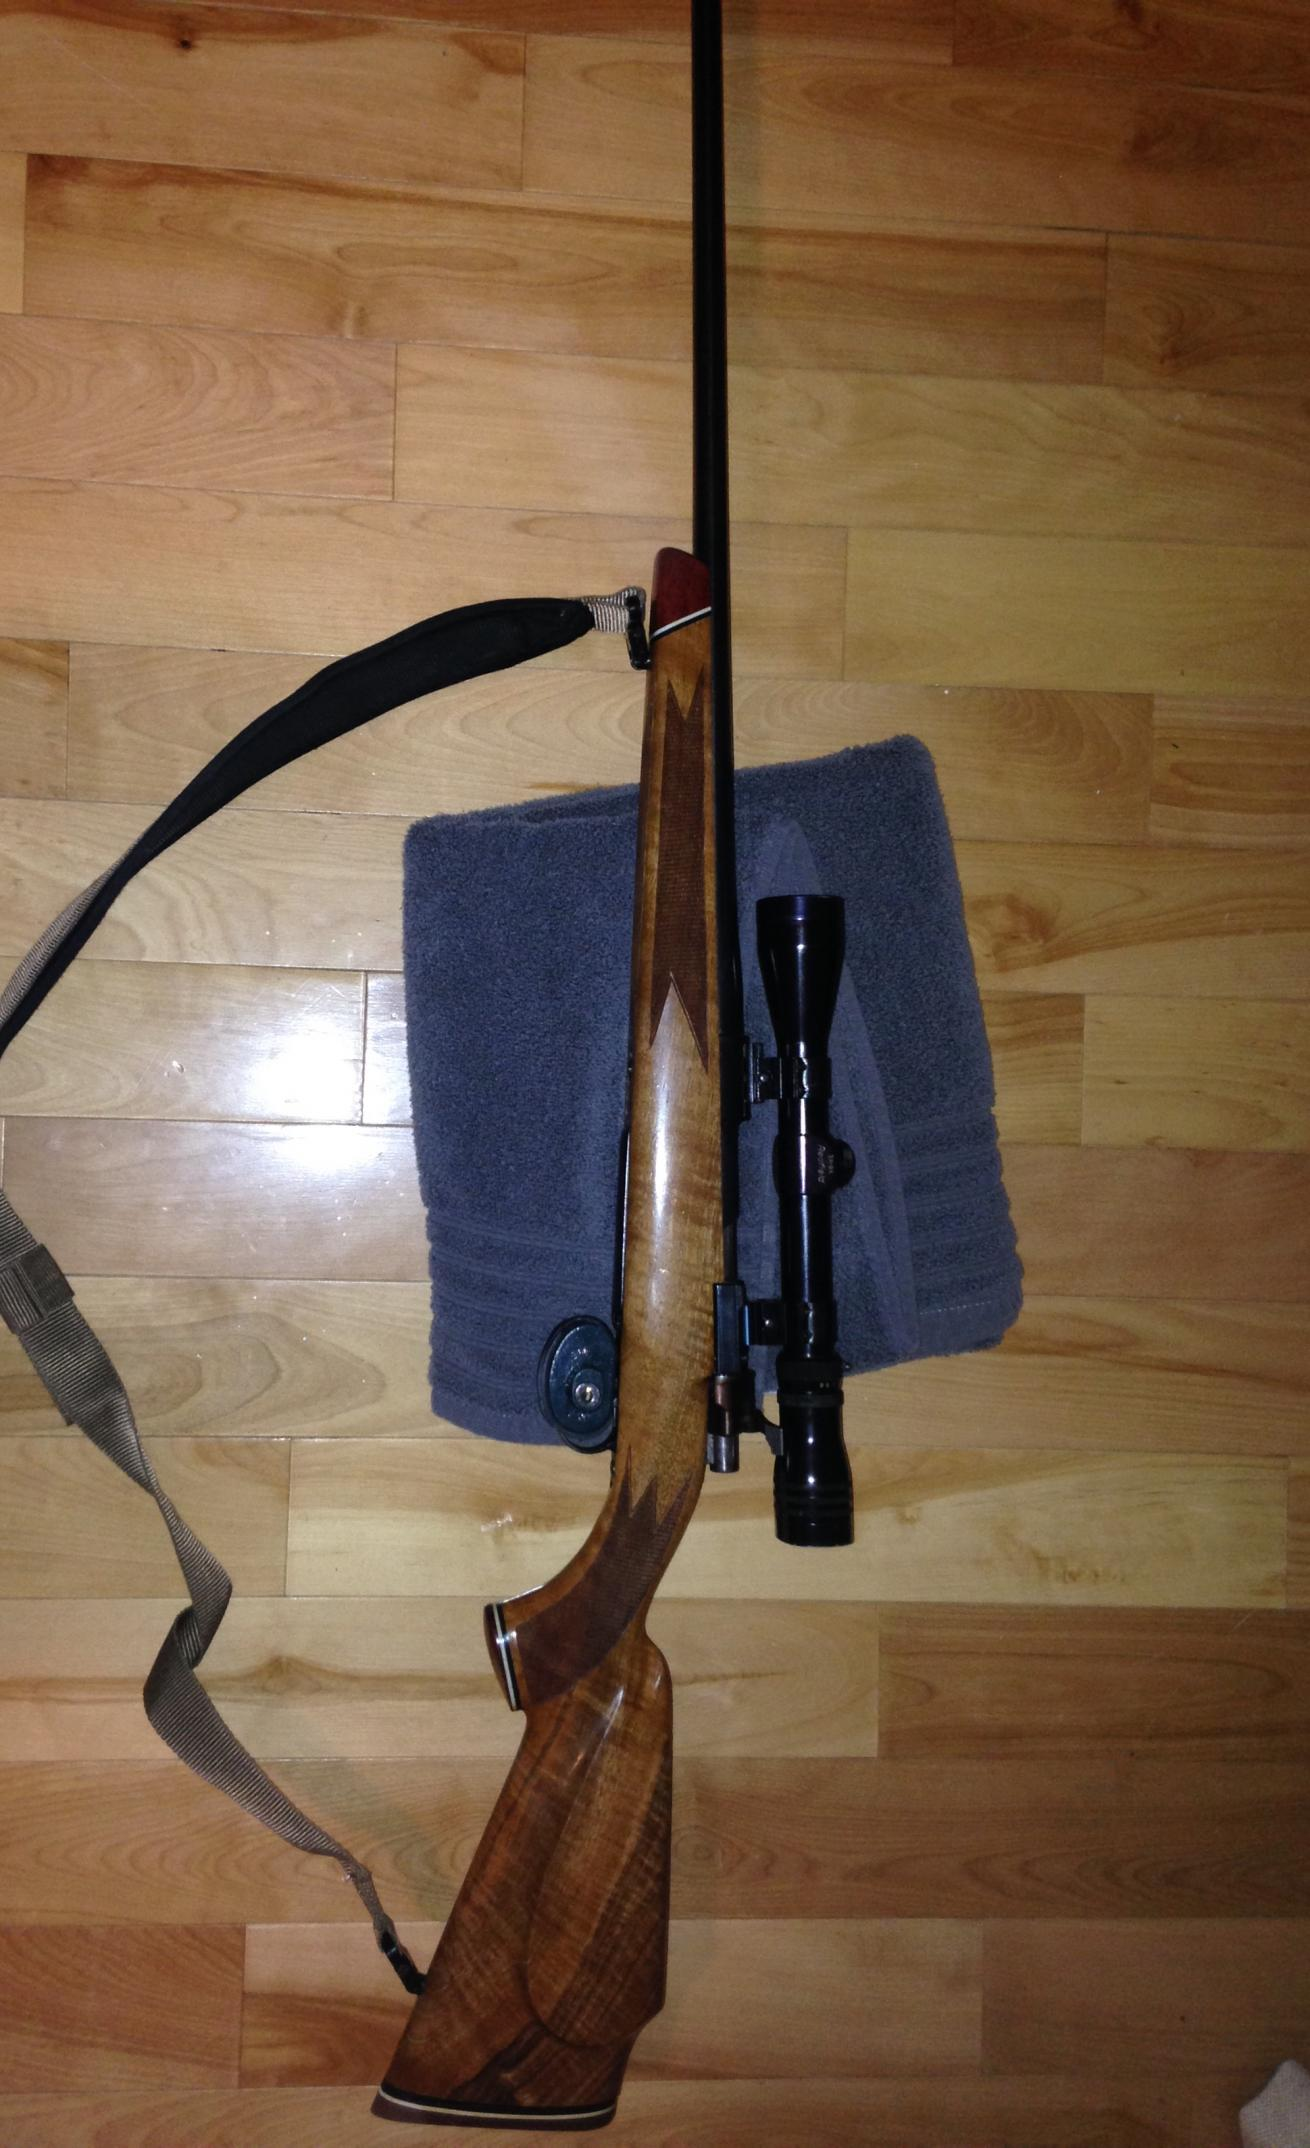 7X57 Mauser - Shooters Forum